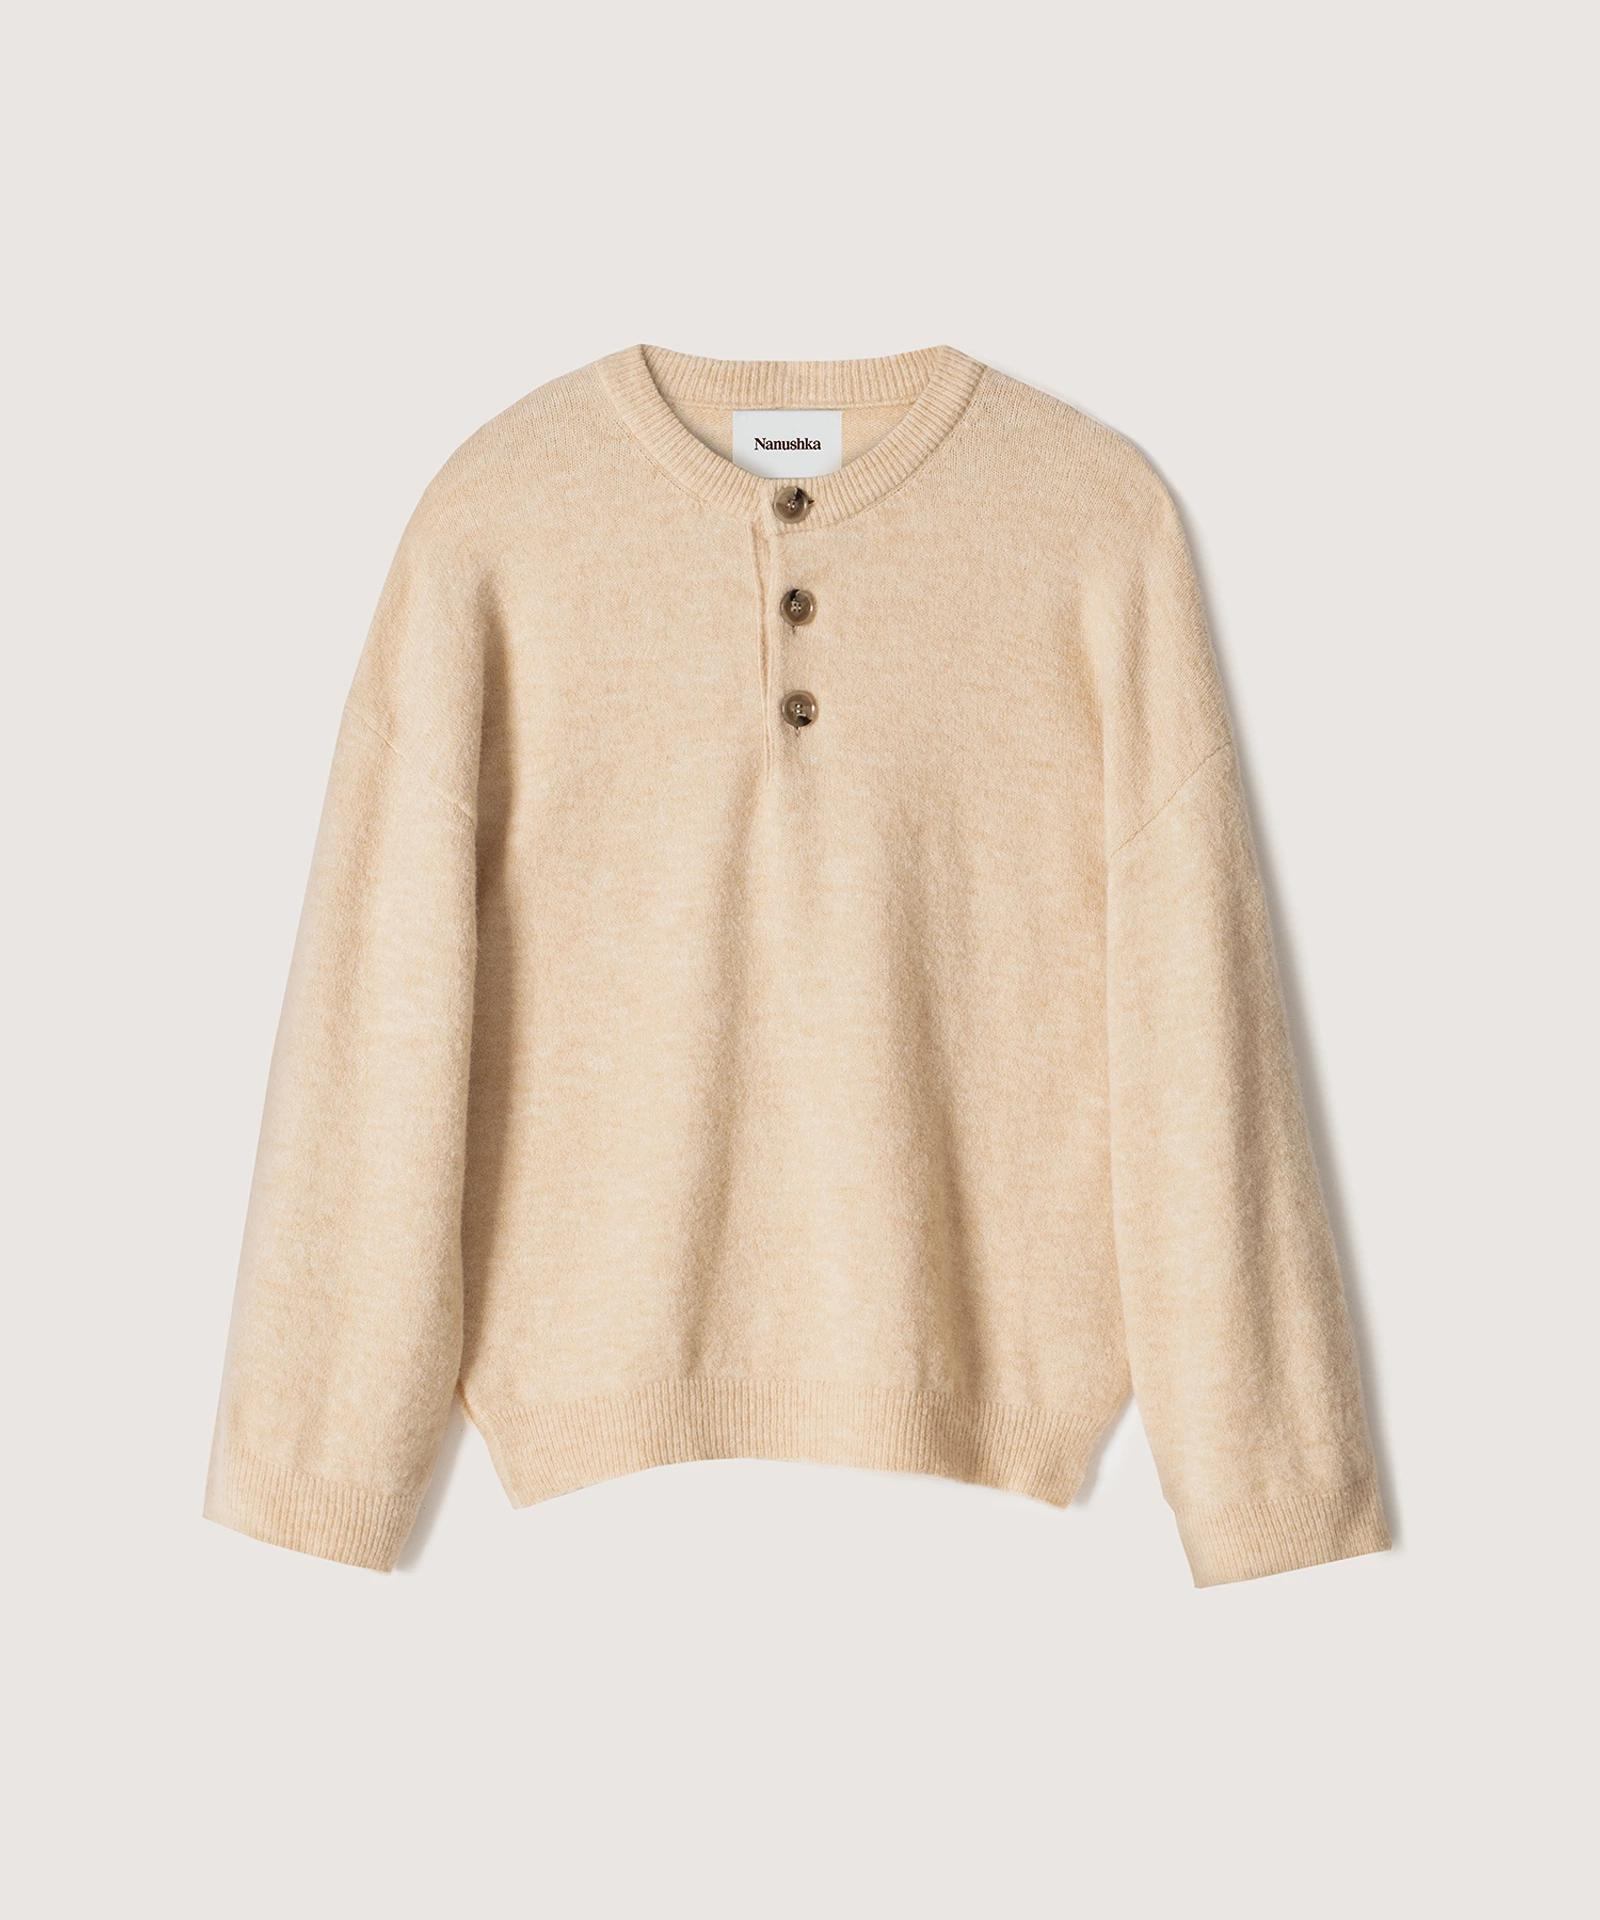 LAMEE - Fluffy-knit sweater - Creme